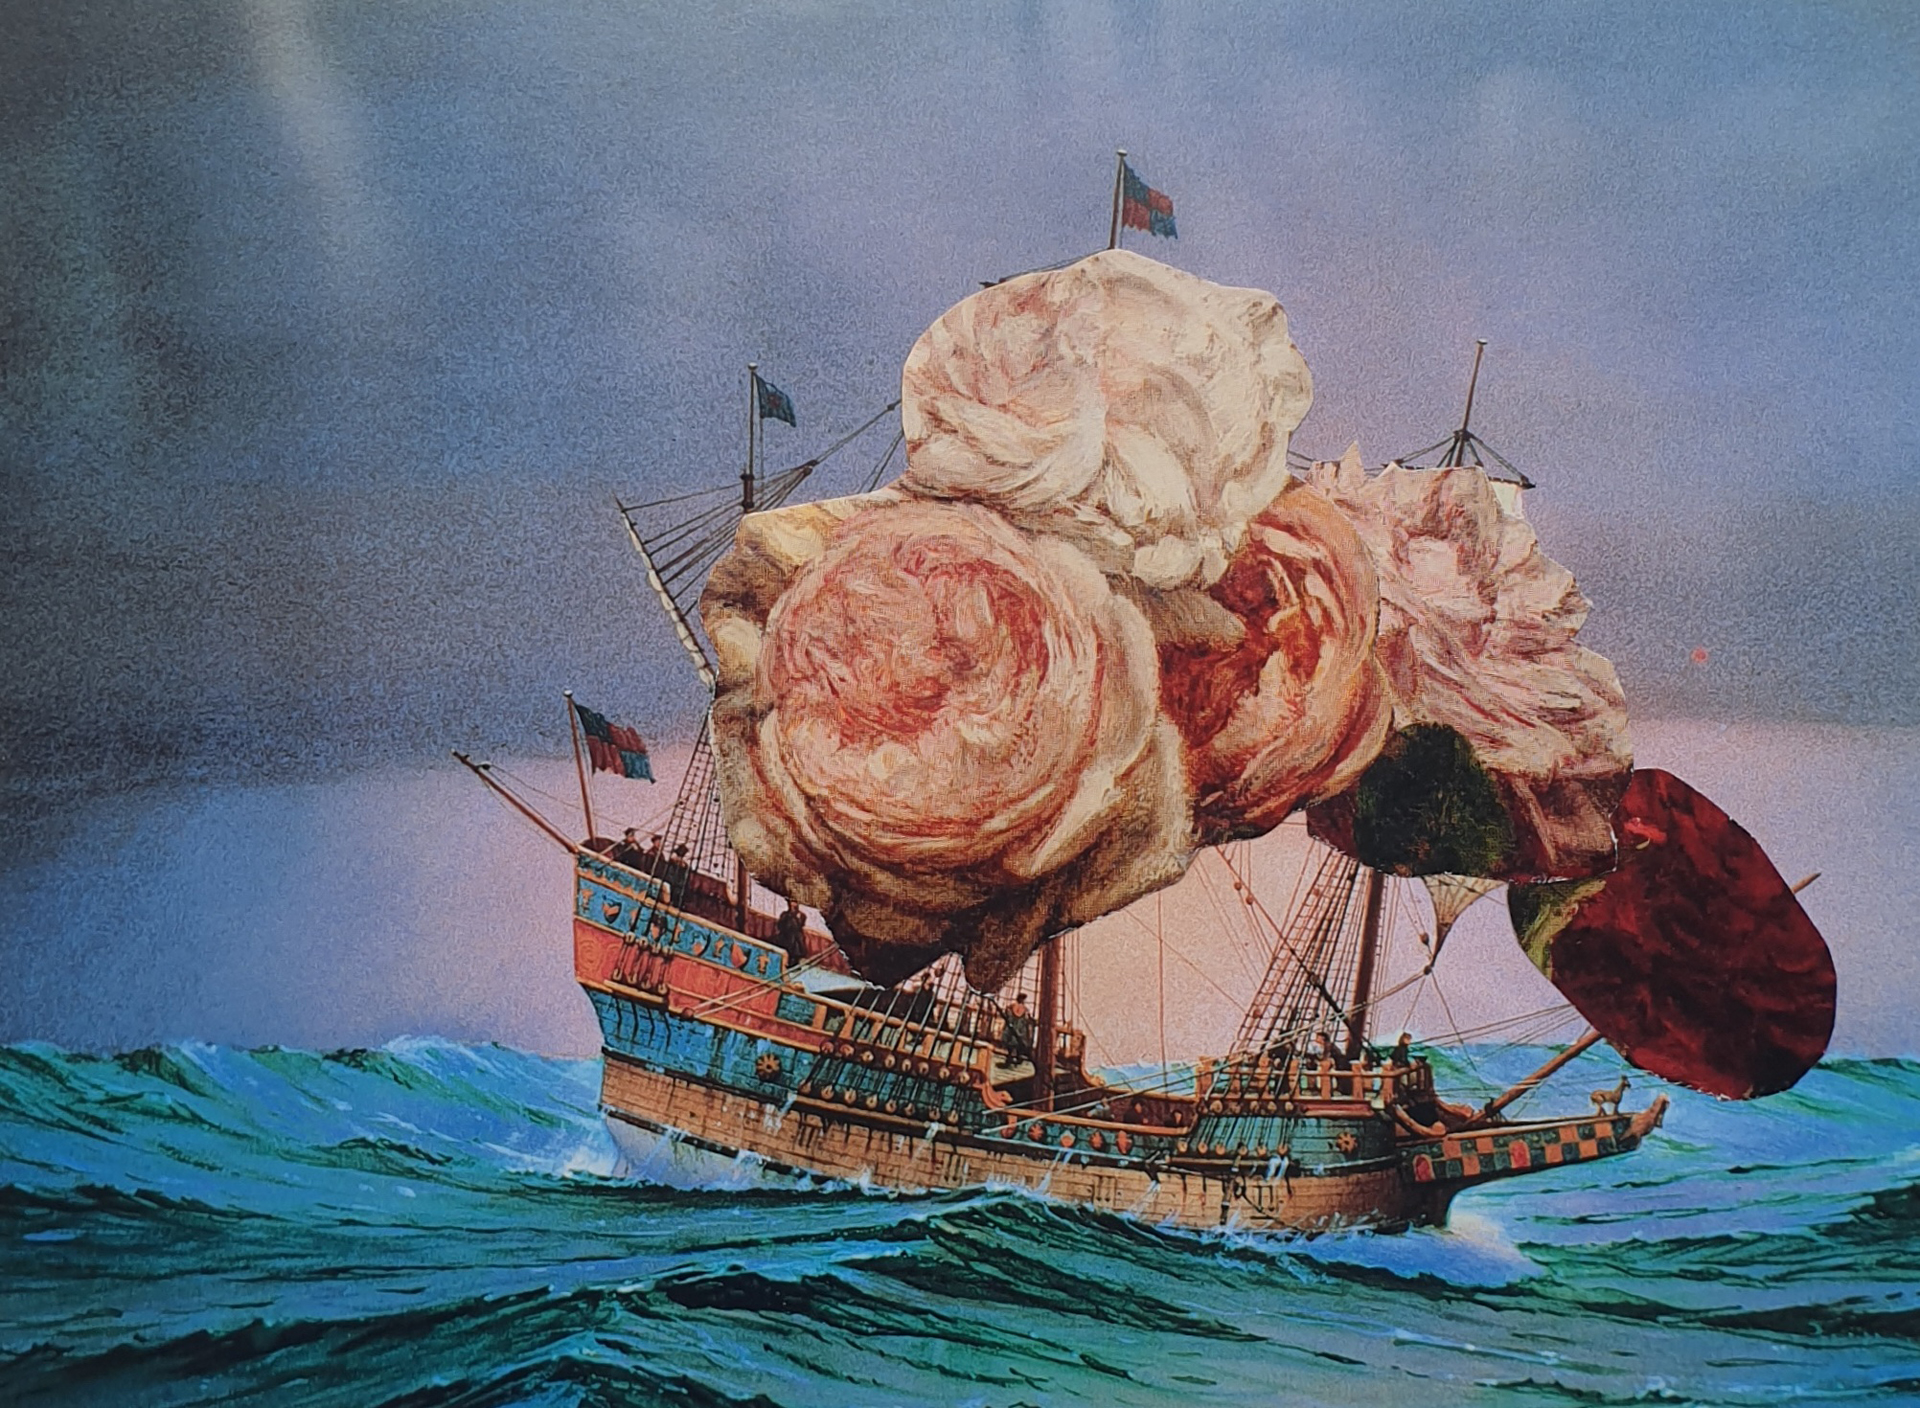 Ship of Fools and Roses